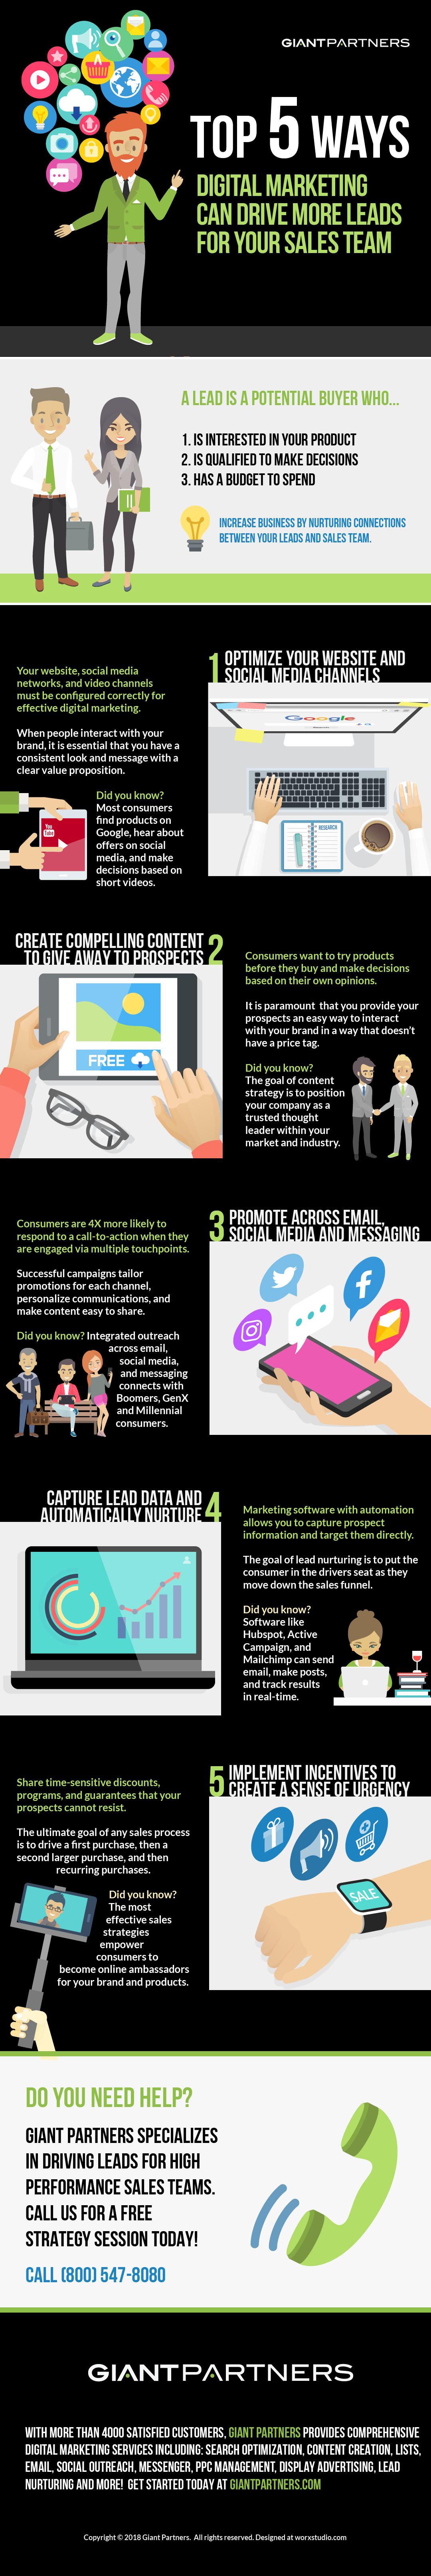 Digital Marketing for Lead Generation Infographic